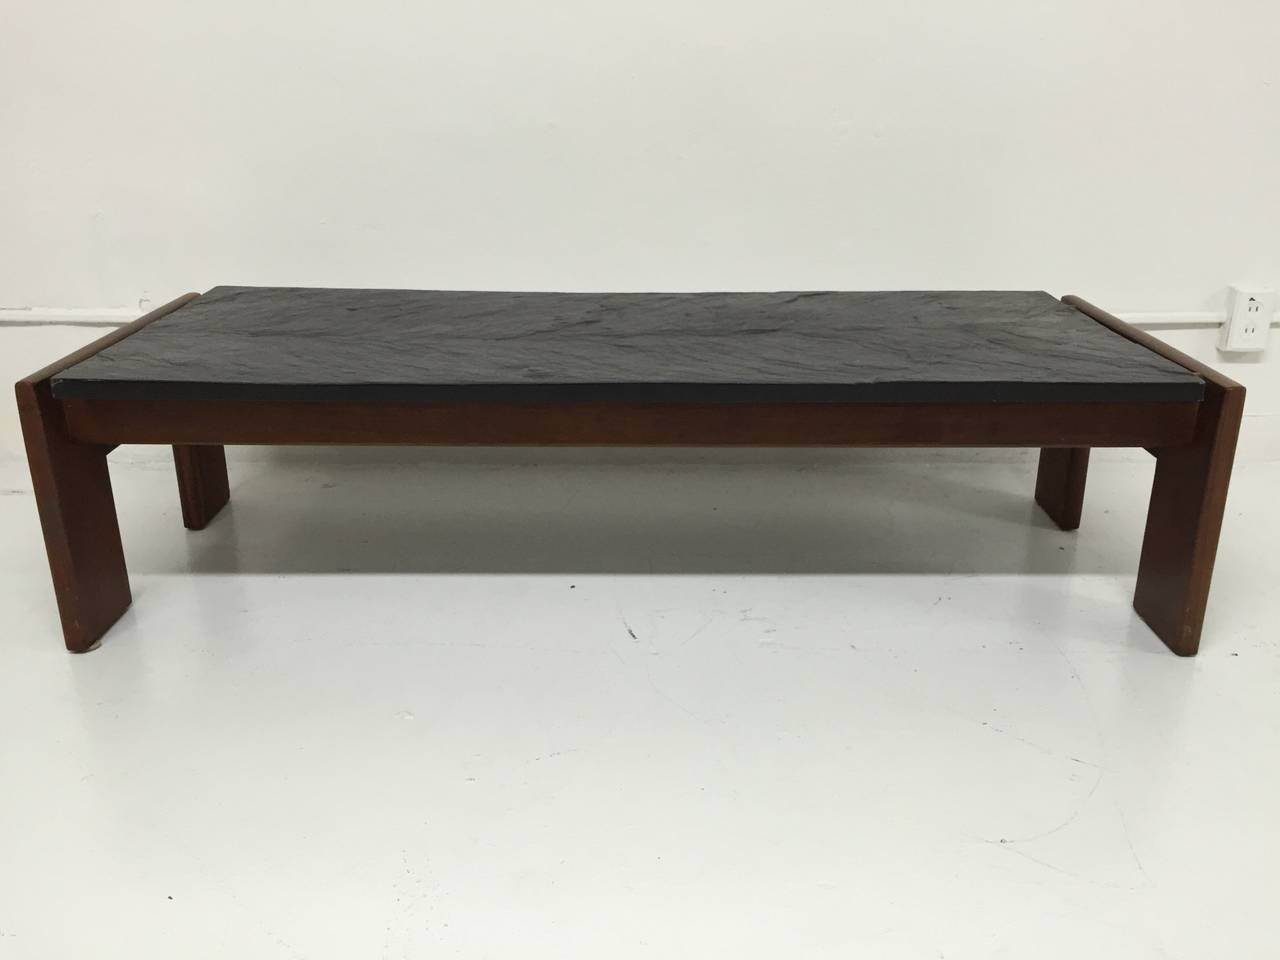 Adrian pearsall coffee table for craft associates for sale at 1stdibs adrian pearsall coffee table for craft associates 2 geotapseo Choice Image